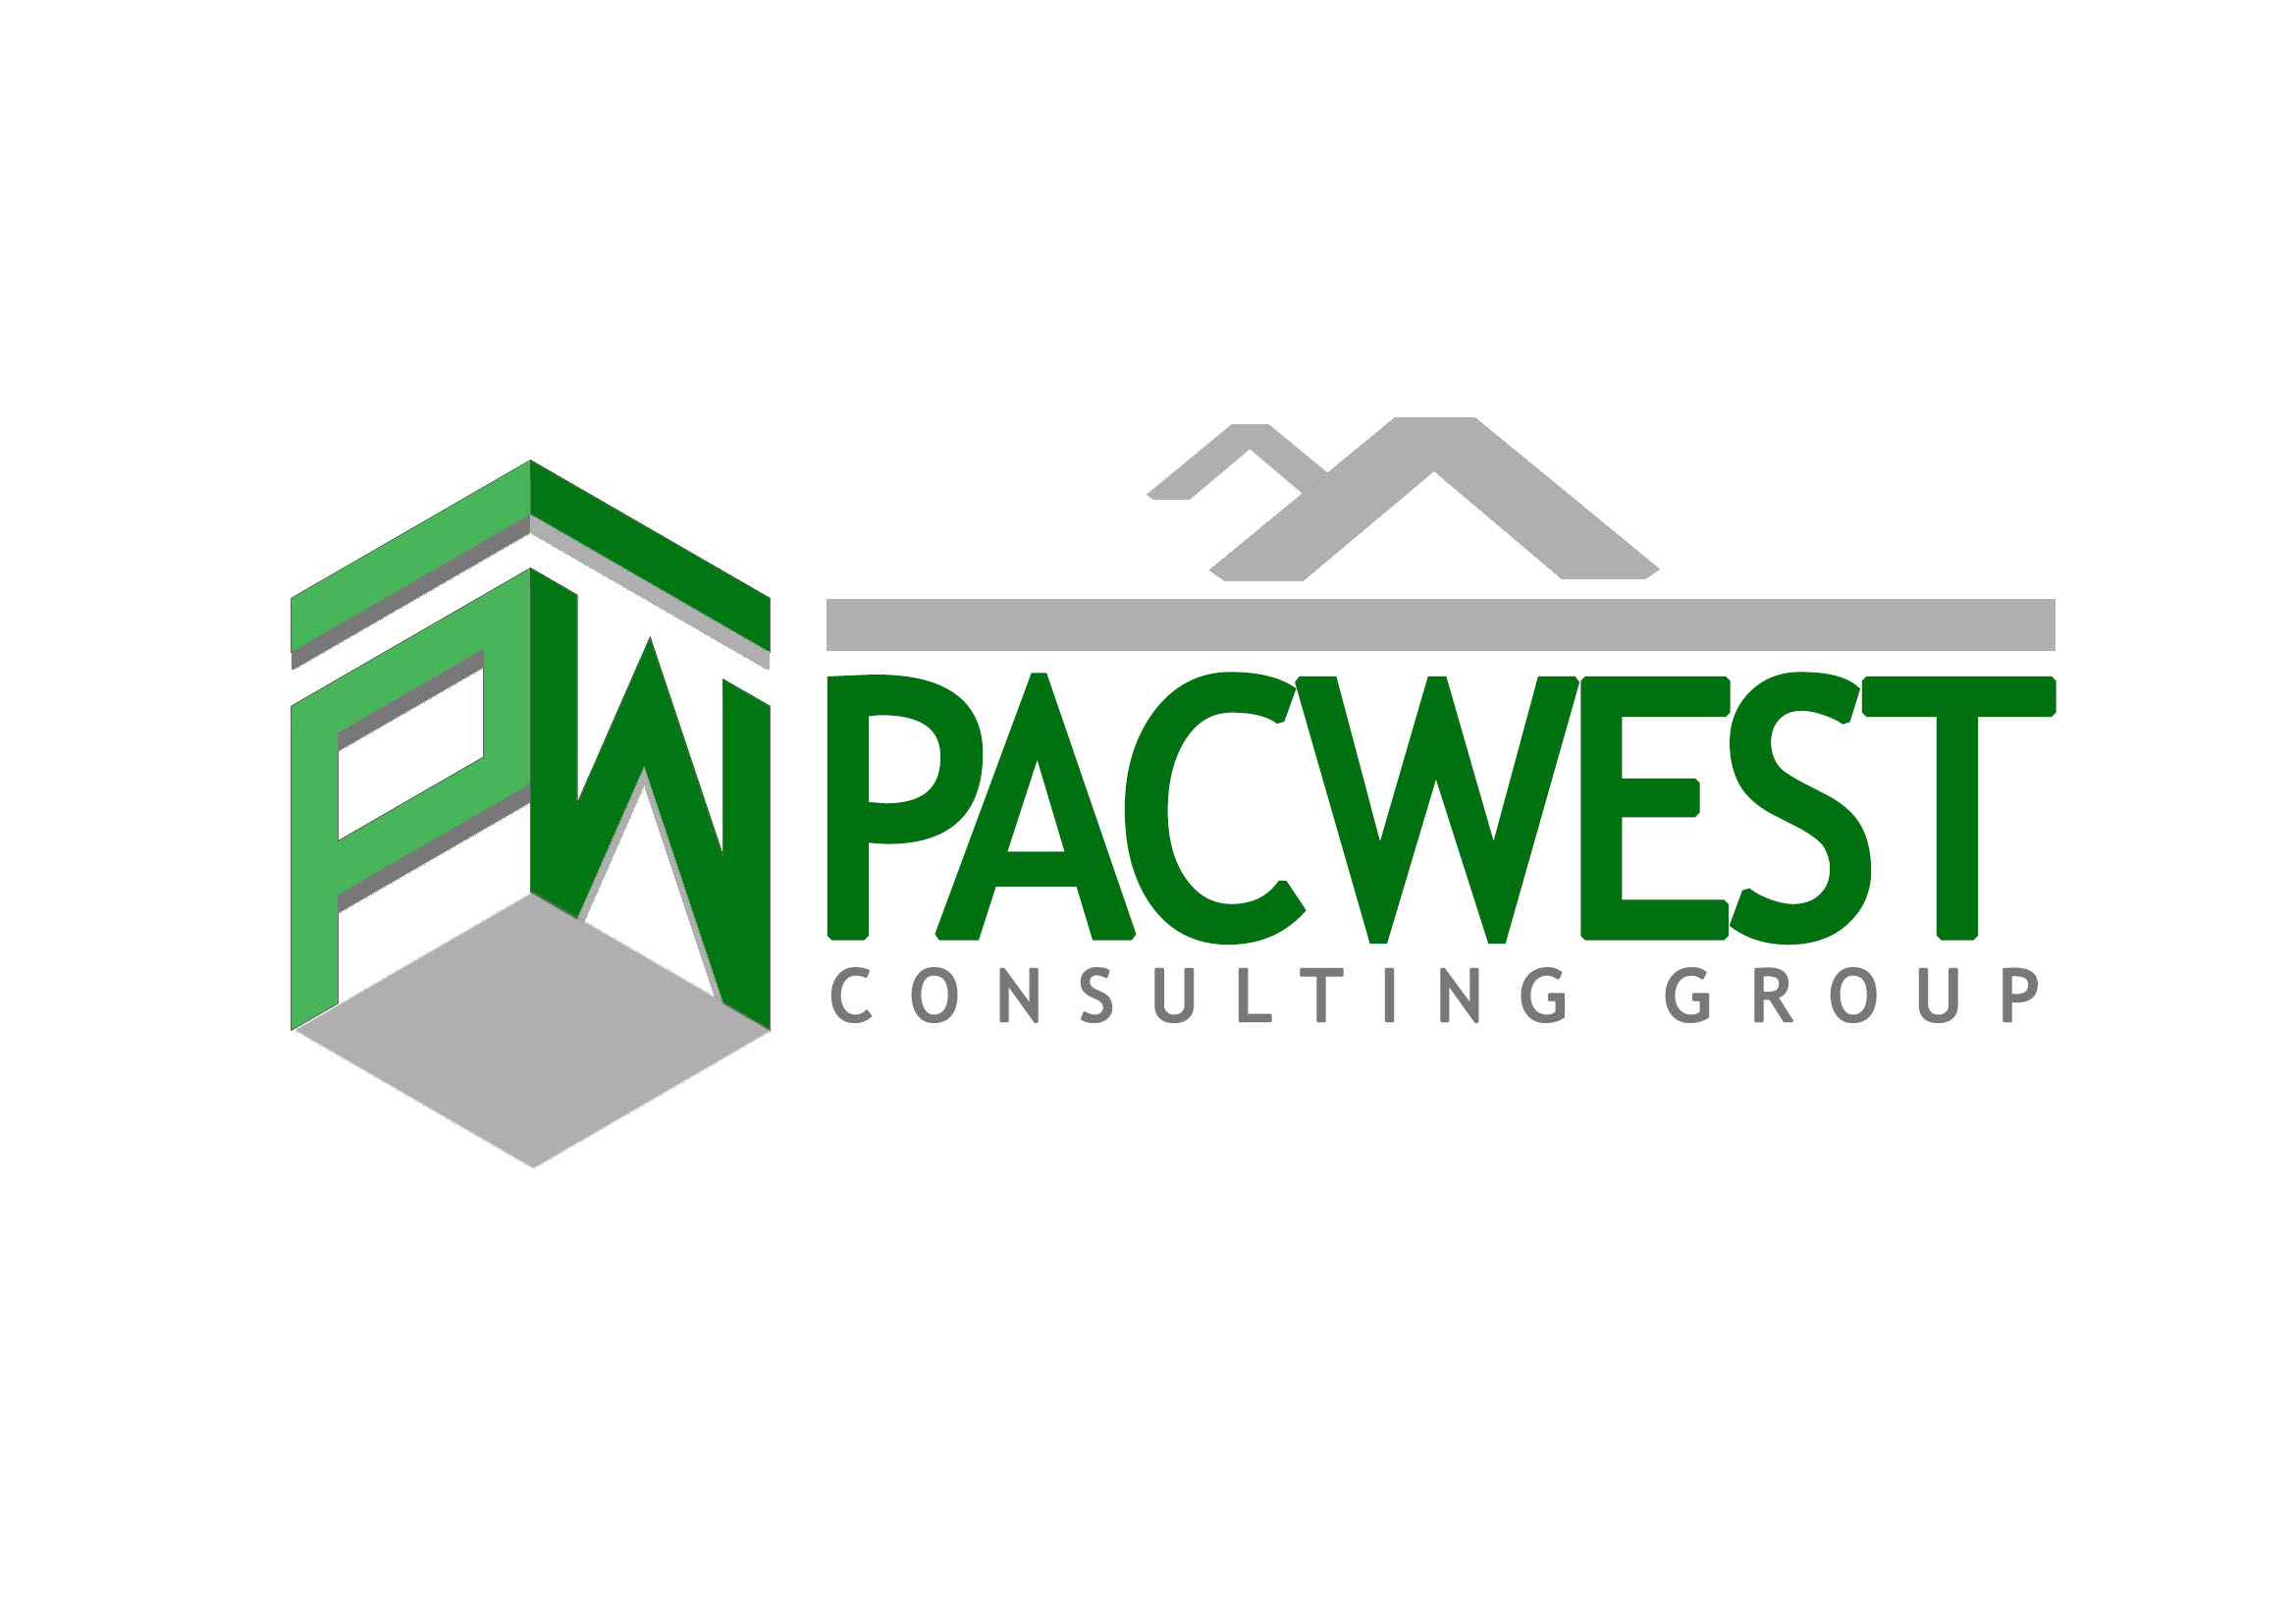 Logo Design by JR Cantos - Entry No. 60 in the Logo Design Contest Imaginative Logo Design for Pacwest Consulting Group.